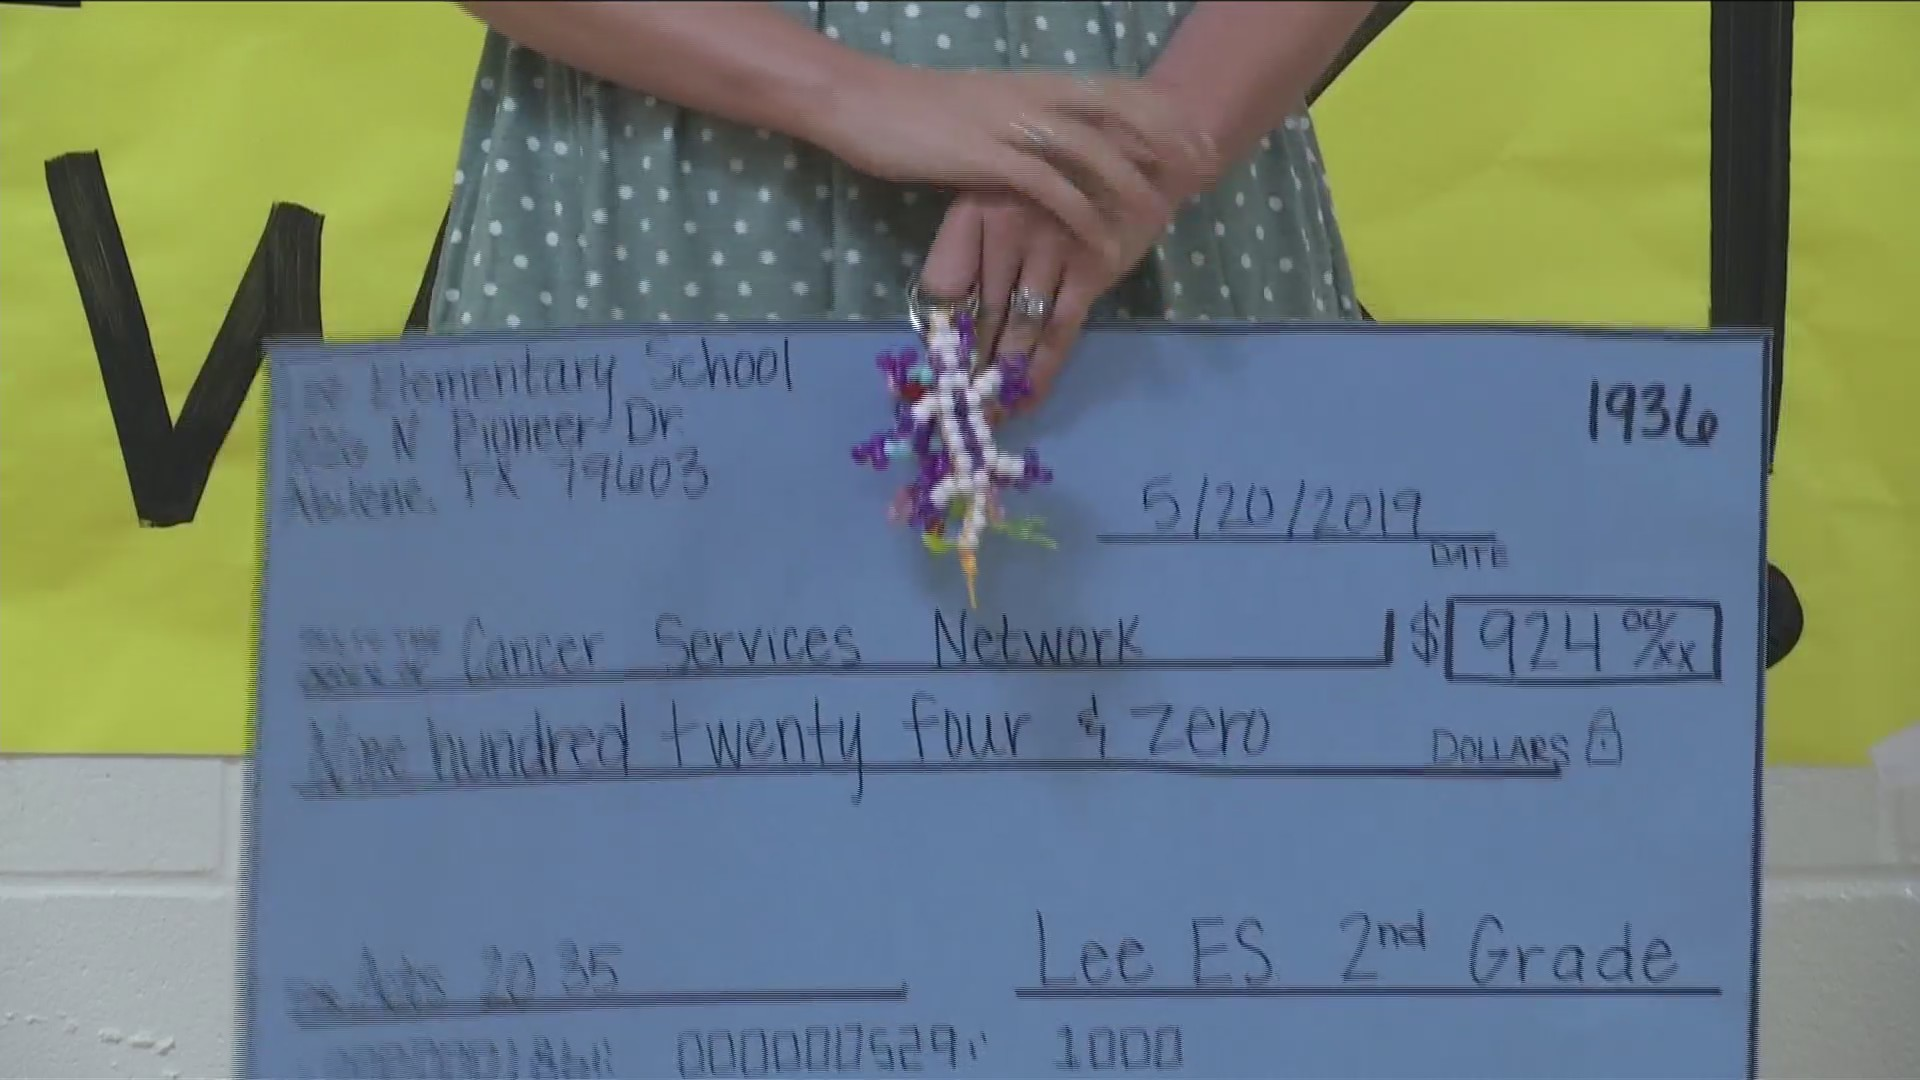 Lee Elementary students sell bracelets to benefit Cancer Services Network